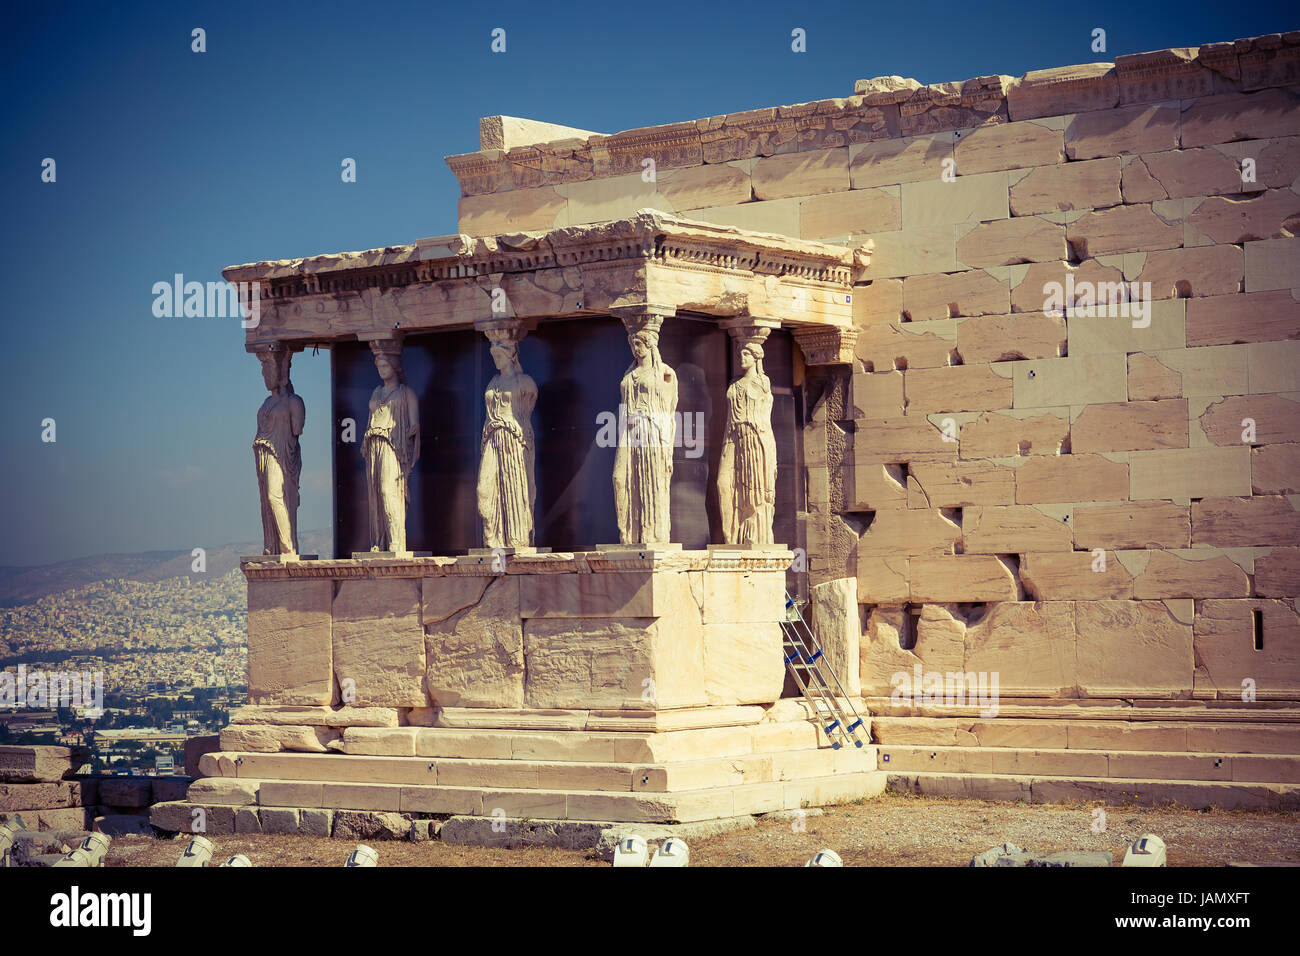 Erechtheum temple in Athens, Greece - Stock Image